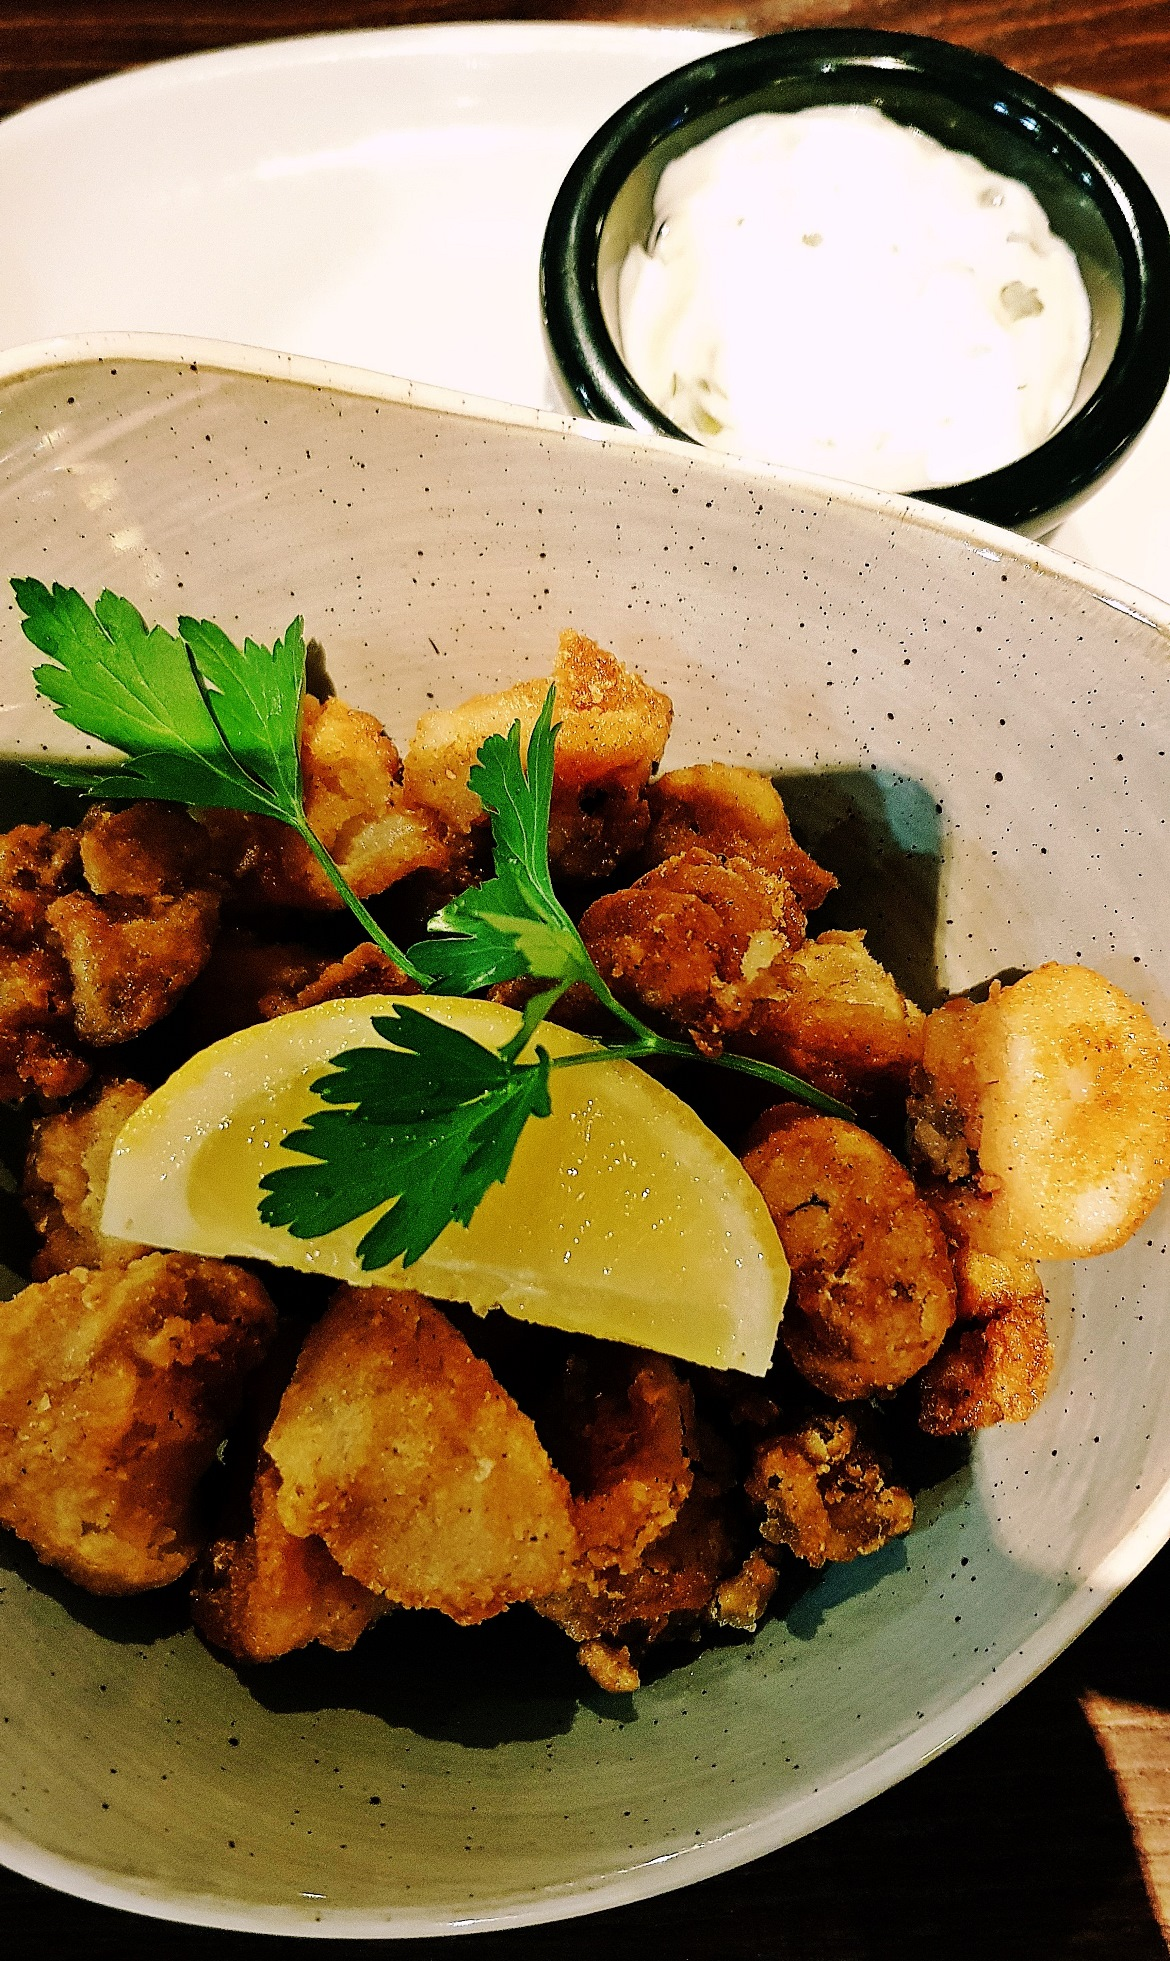 Calamari - Grosvenor Casino Leeds review by BeckyBecky Blogs